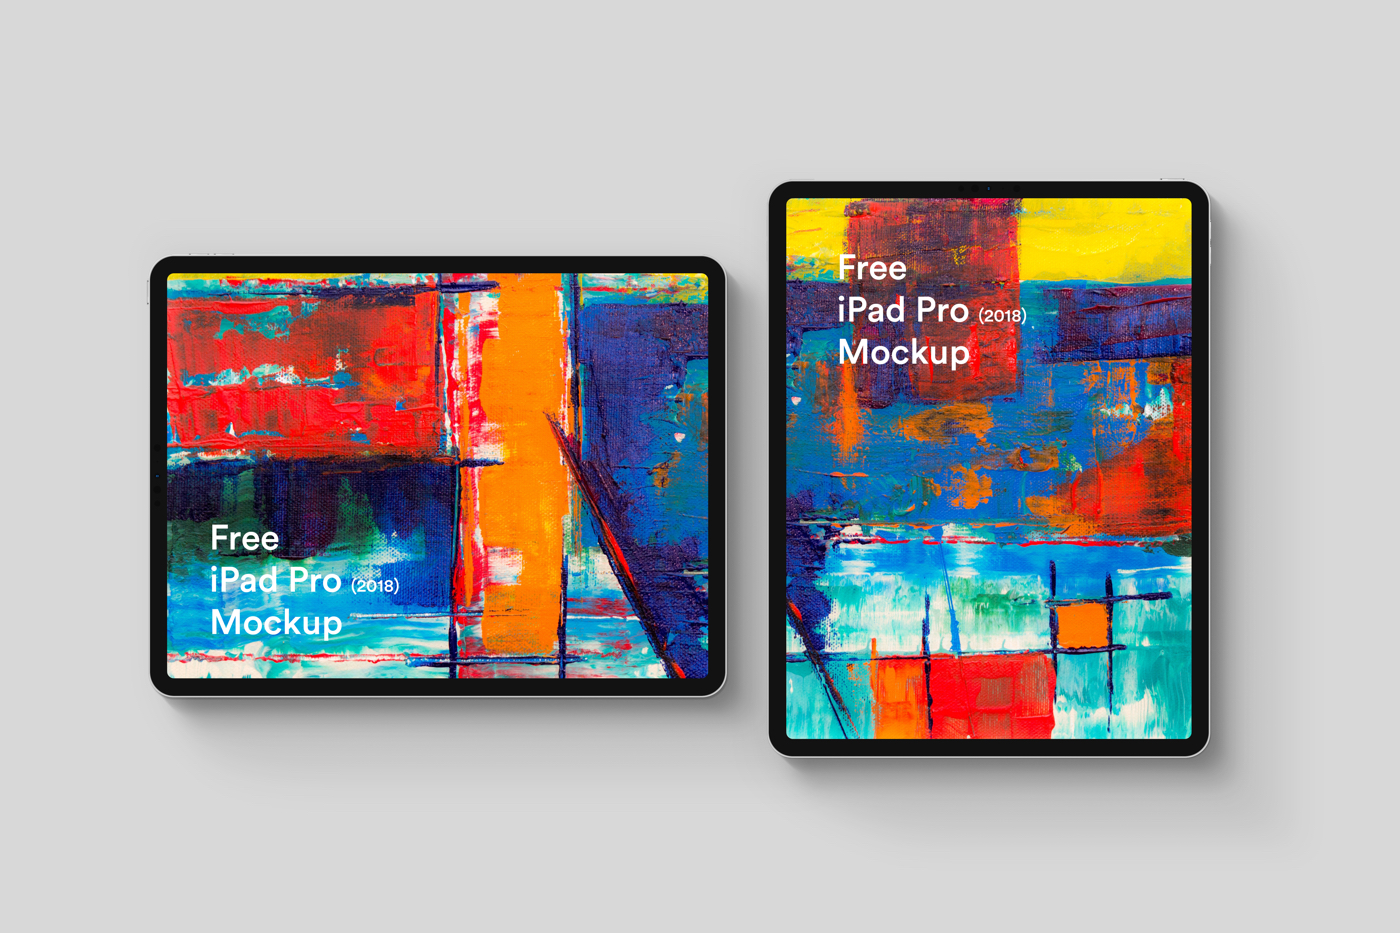 Free iPad Pro 2018 Mockup - For Sketch and Photoshop